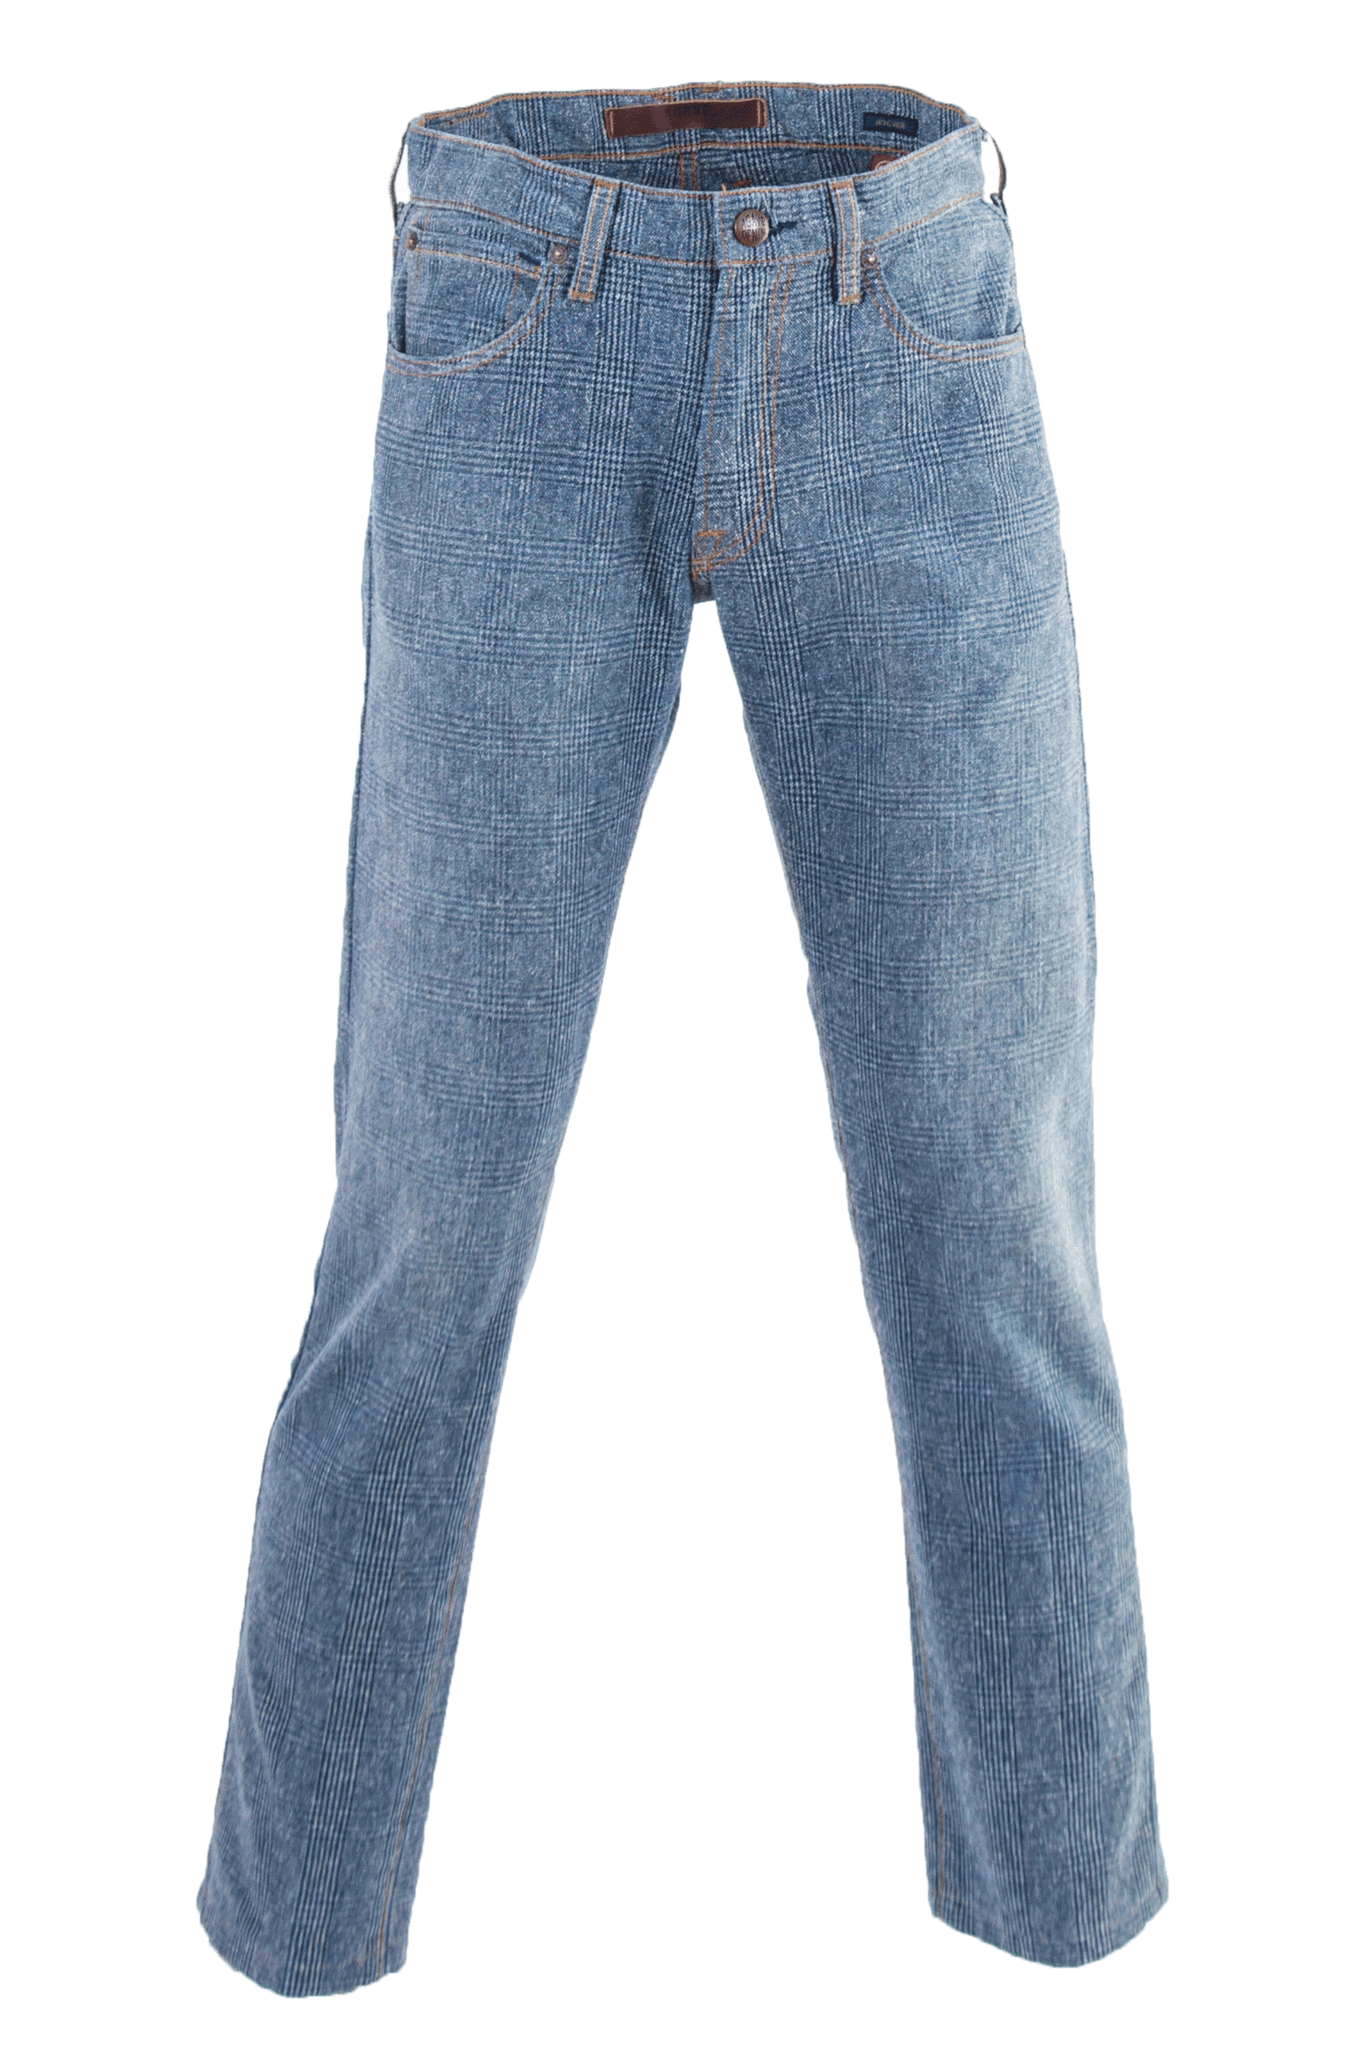 Agave denim jeans in blue plaid